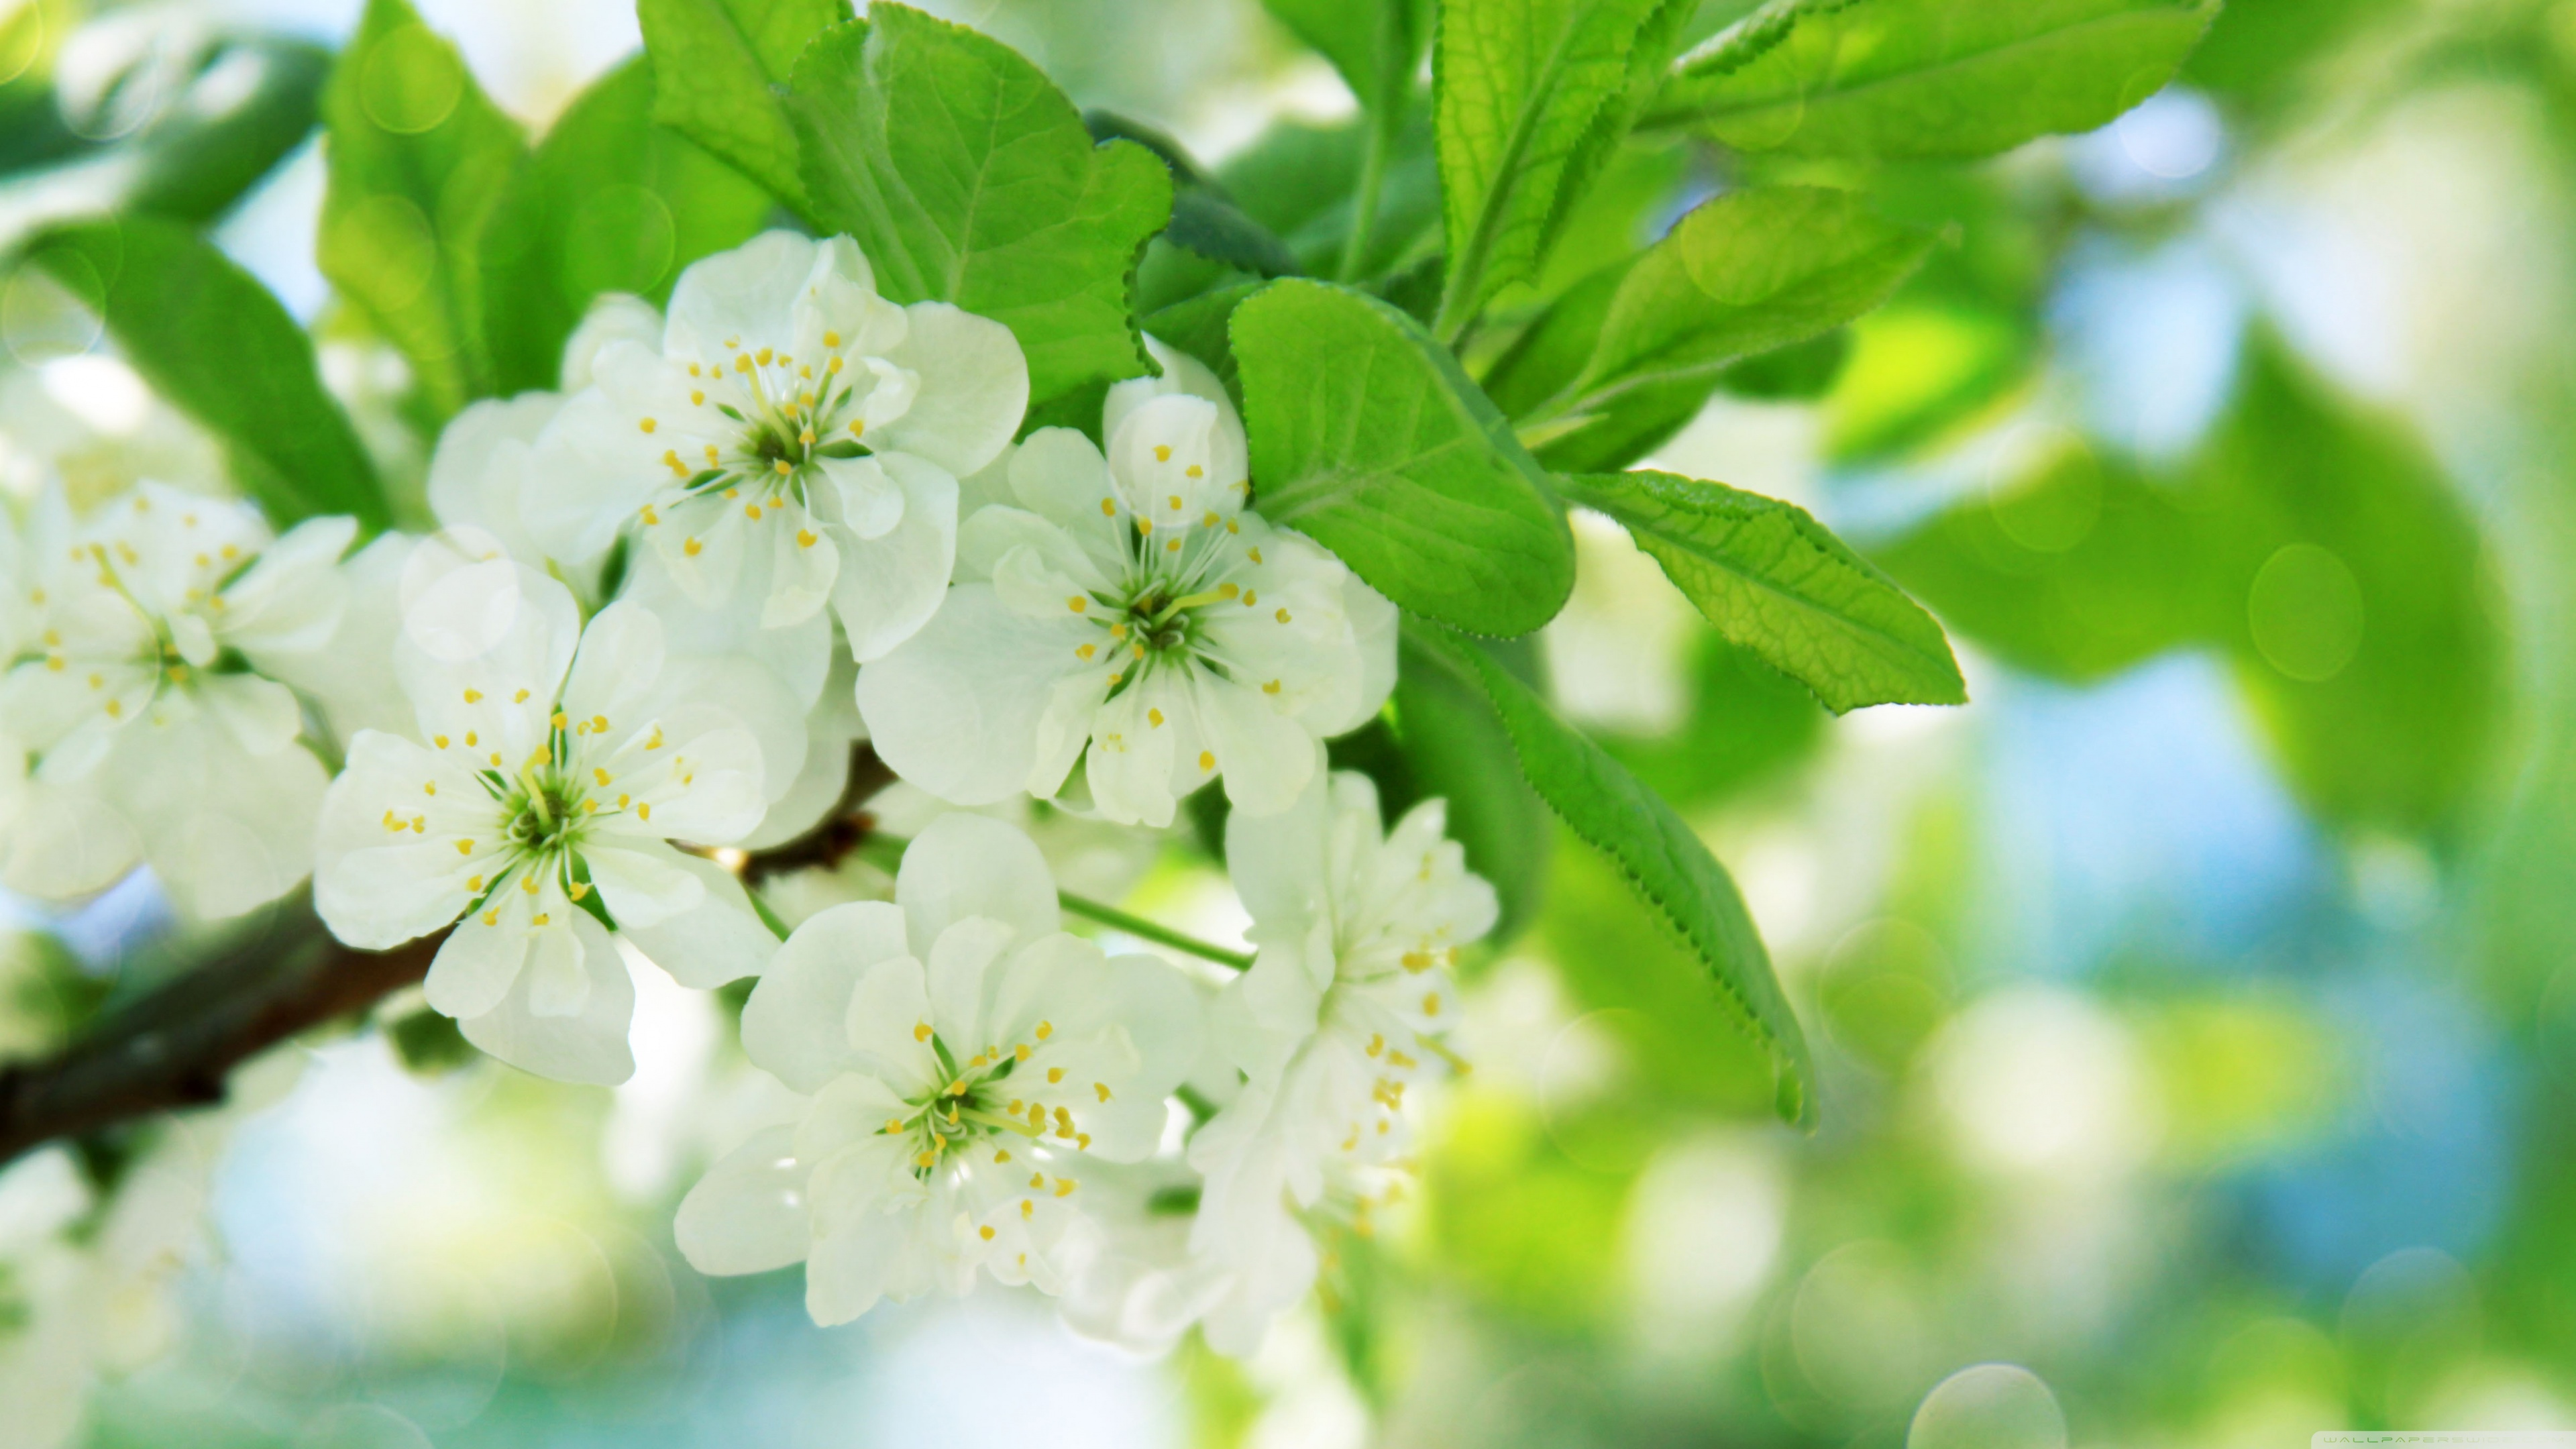 pear_tree_flowers-wallpaper-3840x2160.jpg